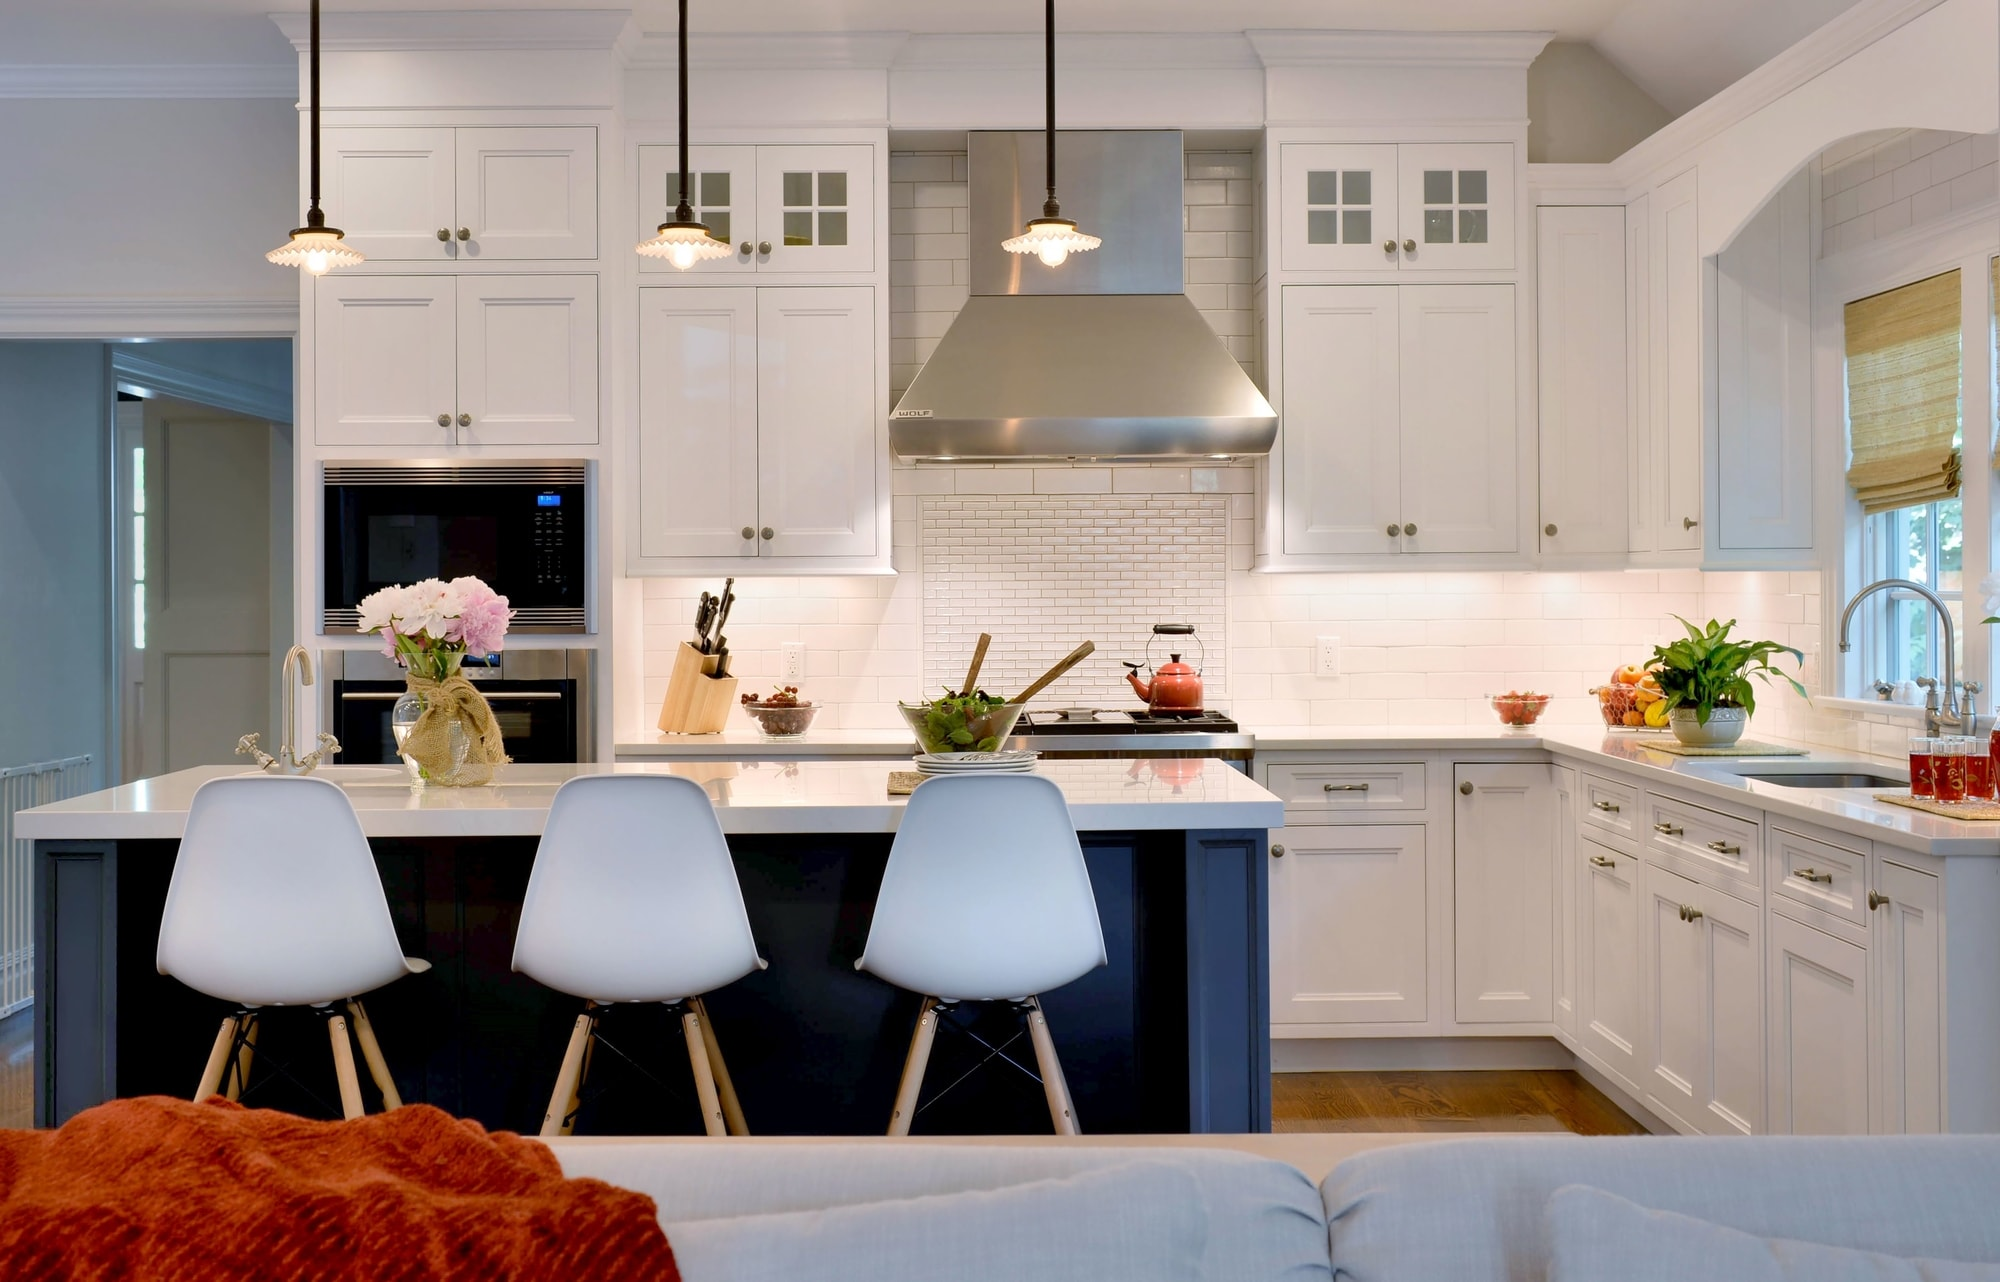 Transitional style kitchen with a center island and three pendant light fixtures